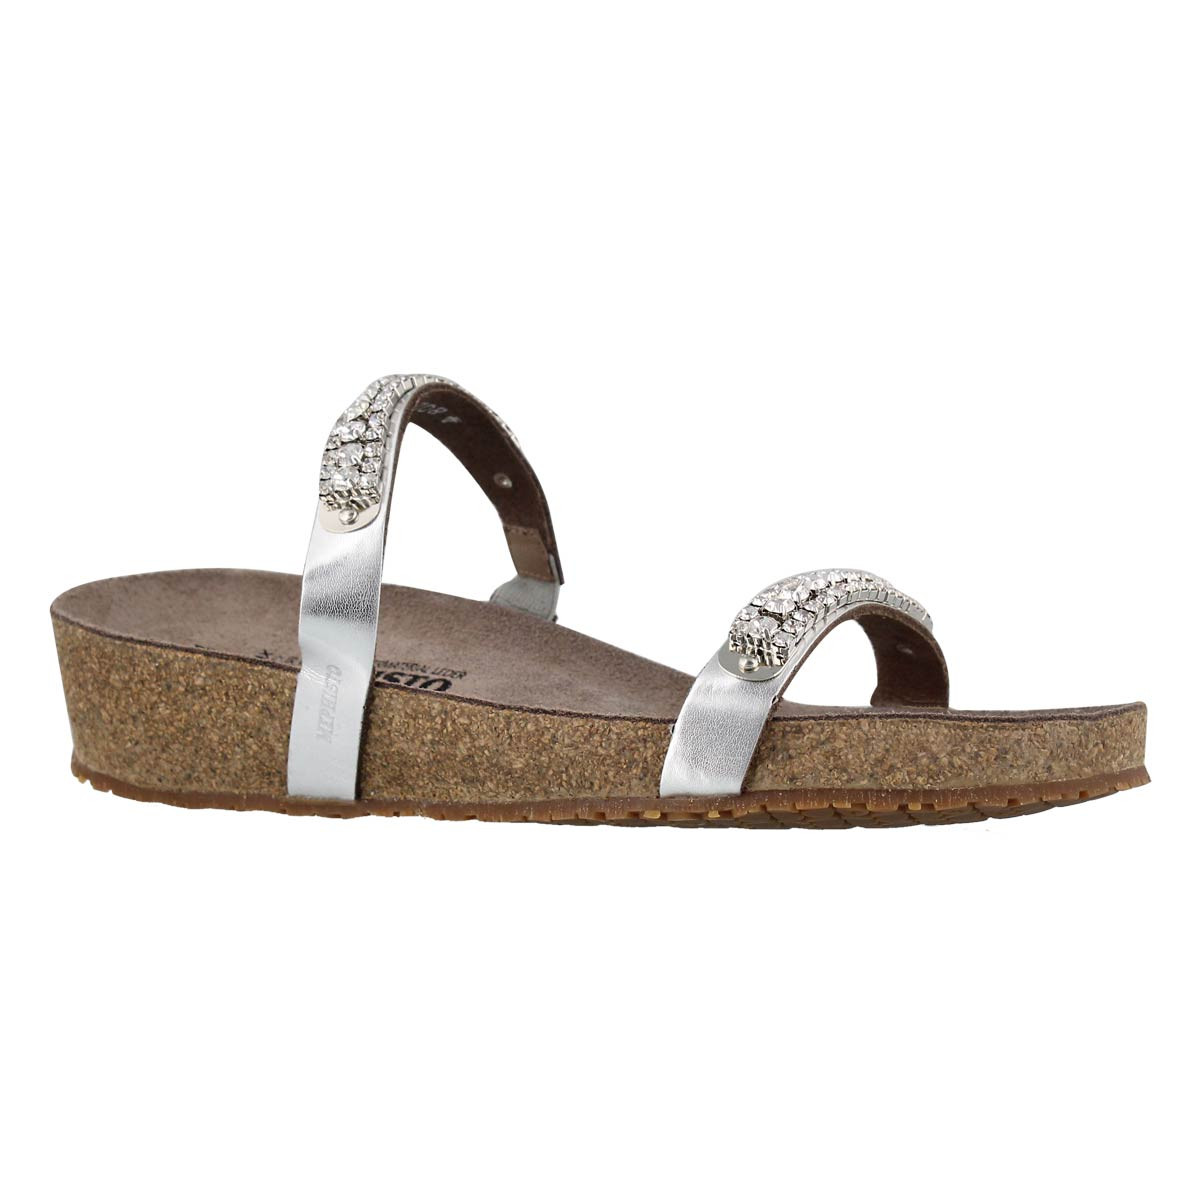 Women's IVANA silver wedge cork footbed sandals